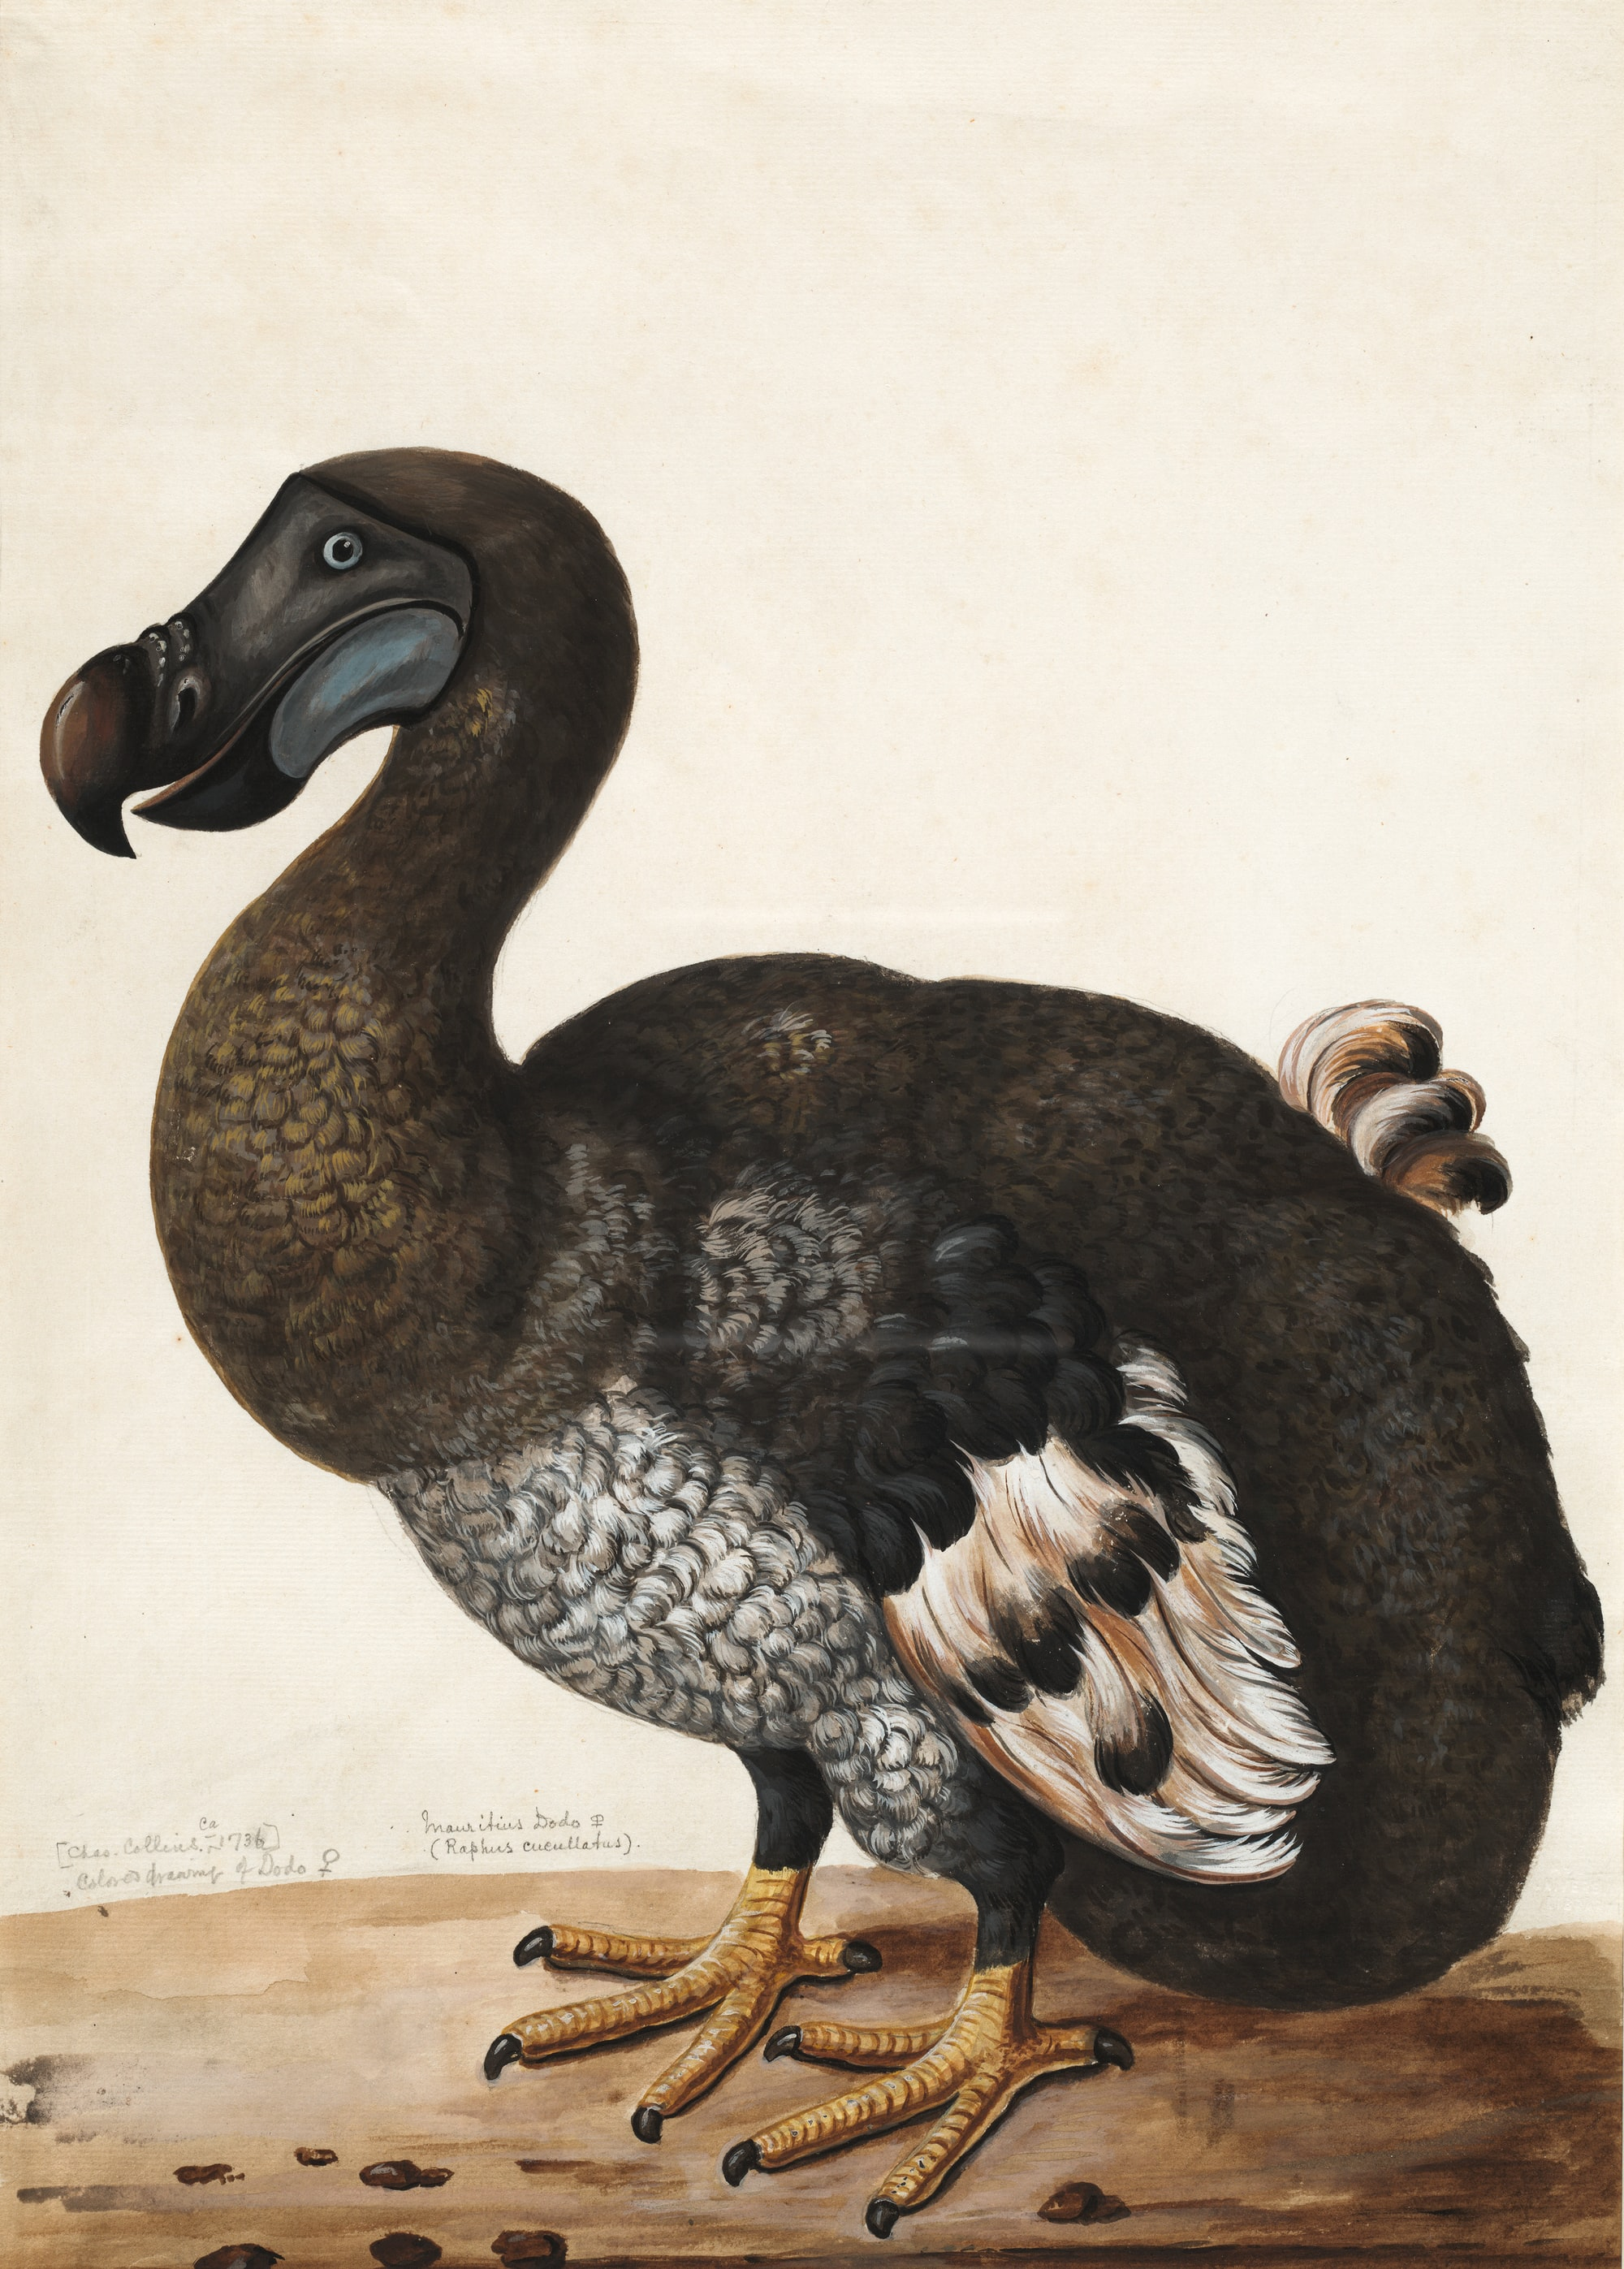 Dodo (Raphus cucullatus) was a flightless bird which became extinct in the late 1600s and was the first bird conclusively destroyed by humans. This illustration was done from a stuffed specimen – note the two left feet and was used by Casey Wood as the frontispiece for his An Introduction to the Literature of Vertebrate Zoology. Dodo (Raphus cucullatus)